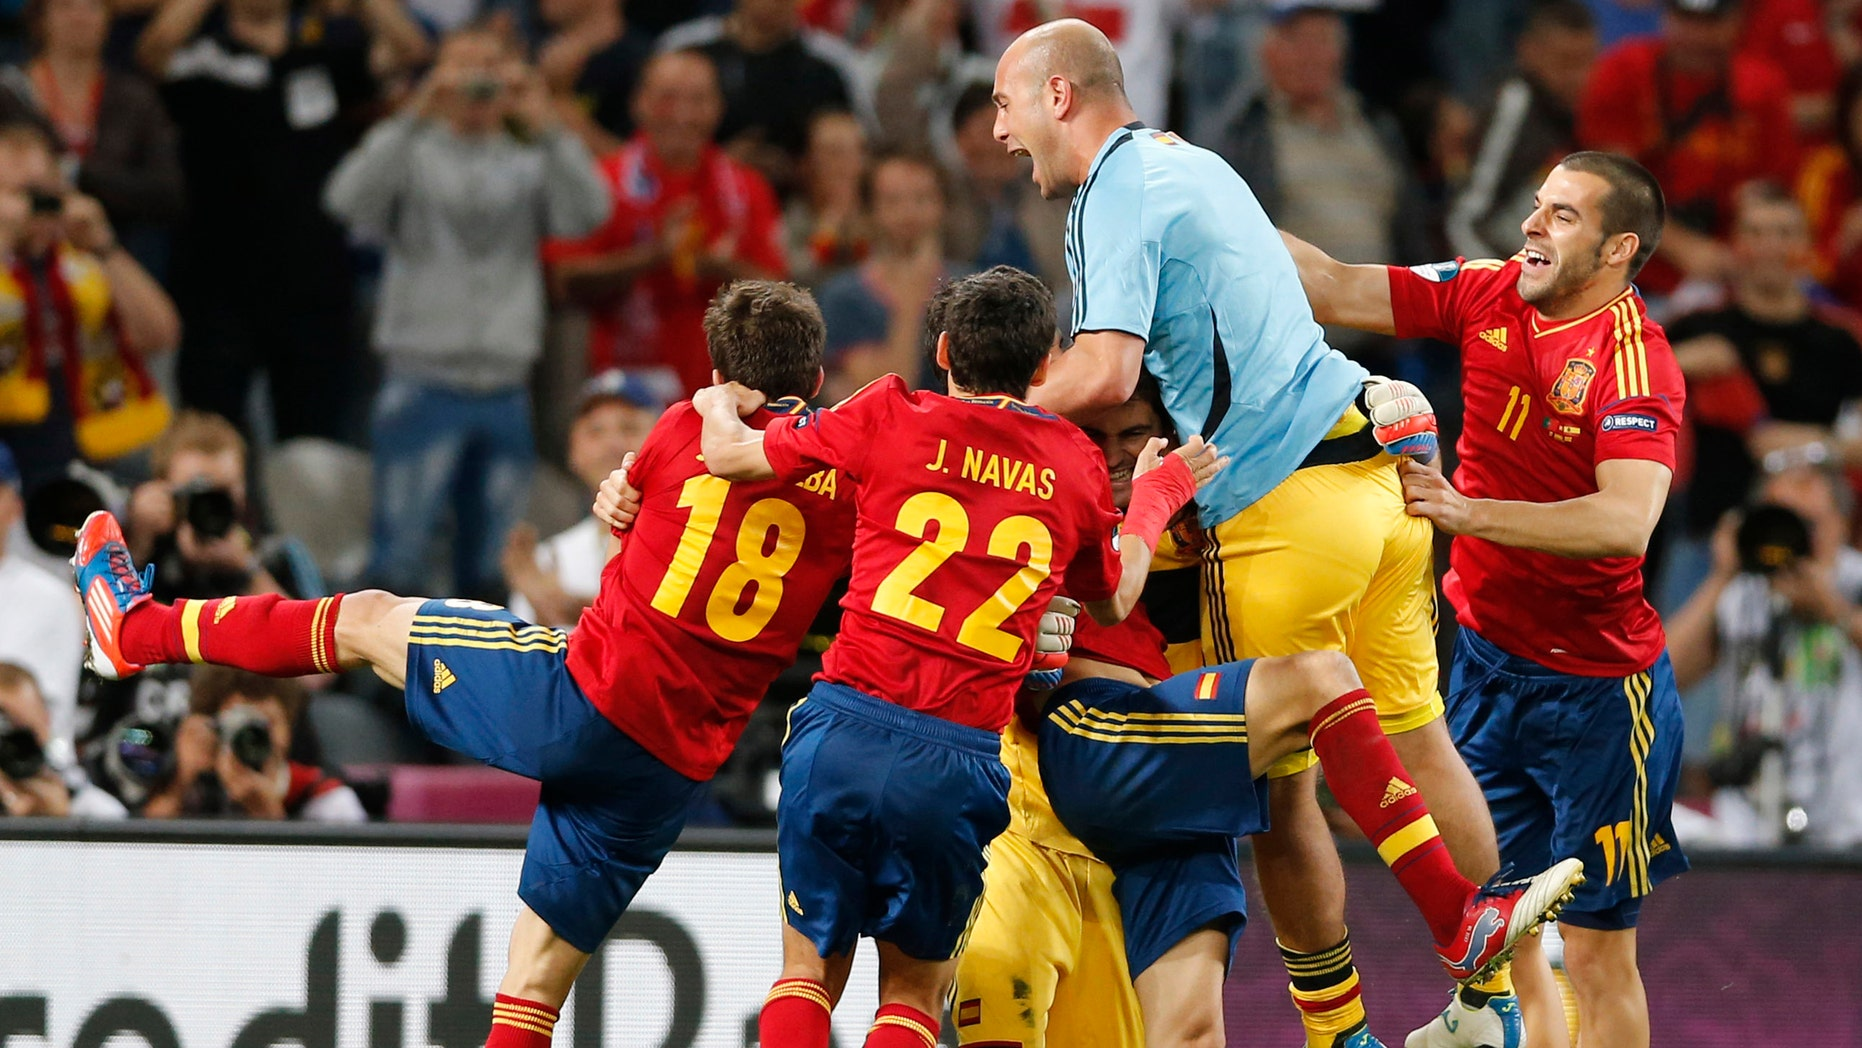 Spanish players celebrate winning the penalty shootout during the Euro 2012 soccer championship semifinal match between Spain and Portugal in Donetsk, Ukraine, Wednesday, June 27, 2012. (AP Photo/Antonio Calanni)